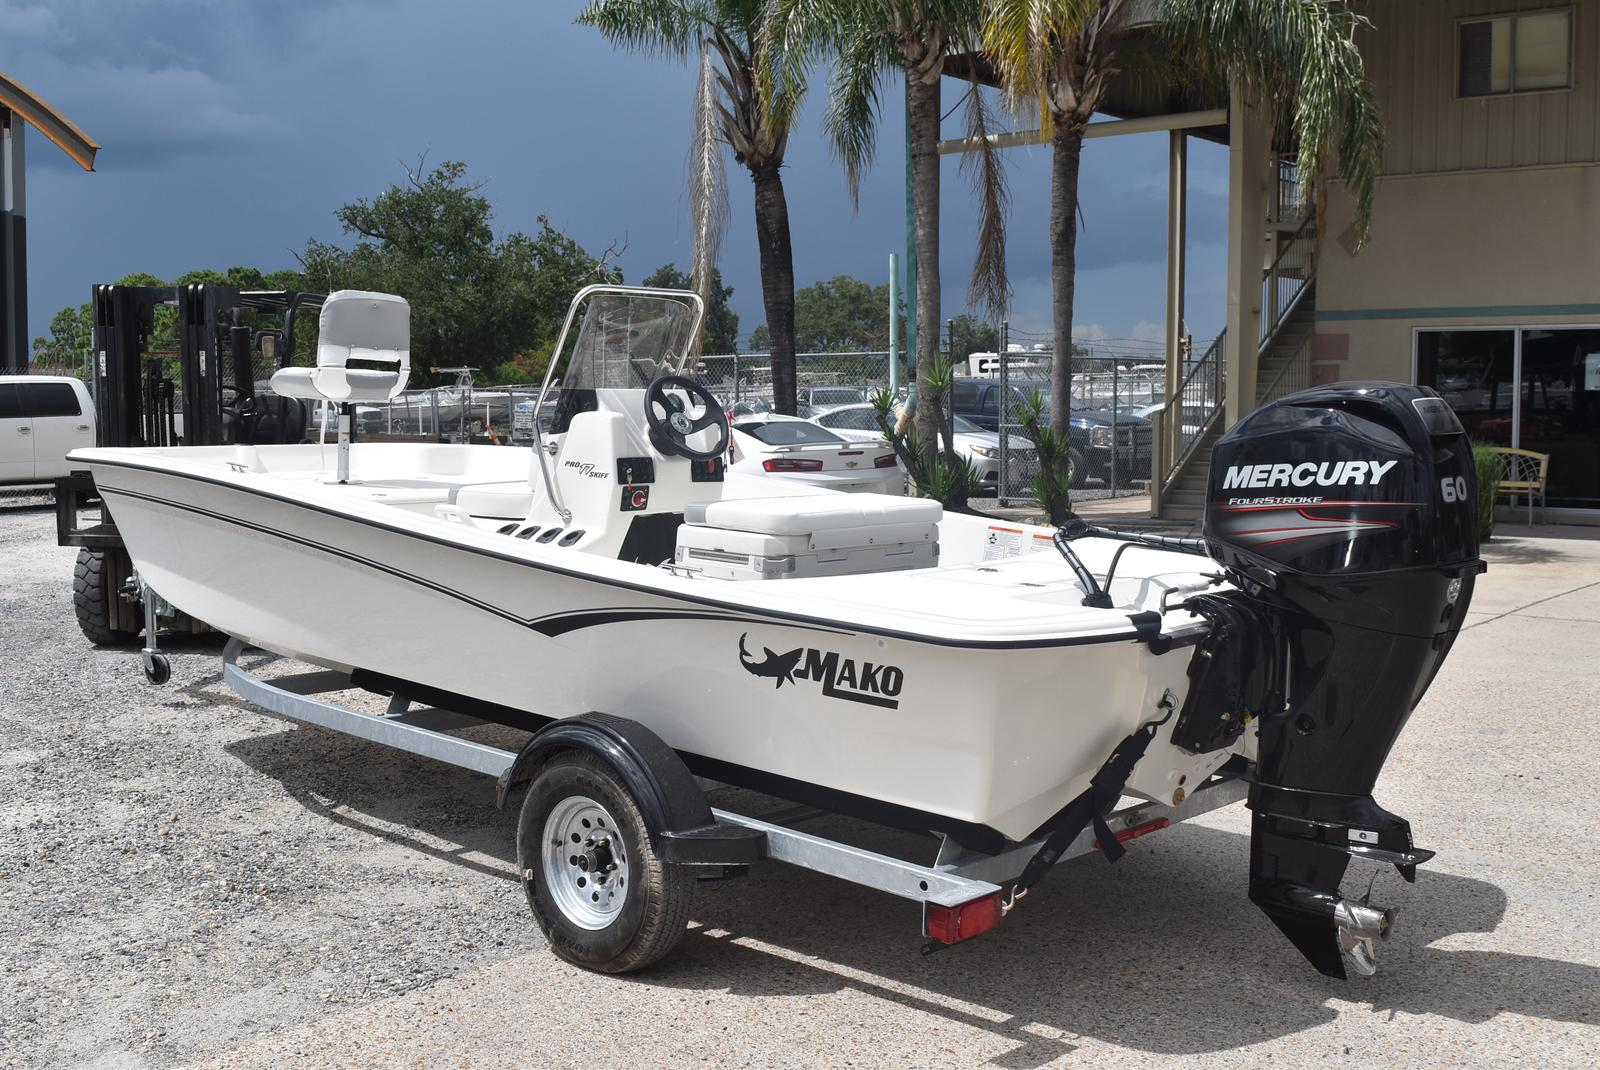 2020 Mako boat for sale, model of the boat is Pro Skiff 17, 75 ELPT & Image # 199 of 702